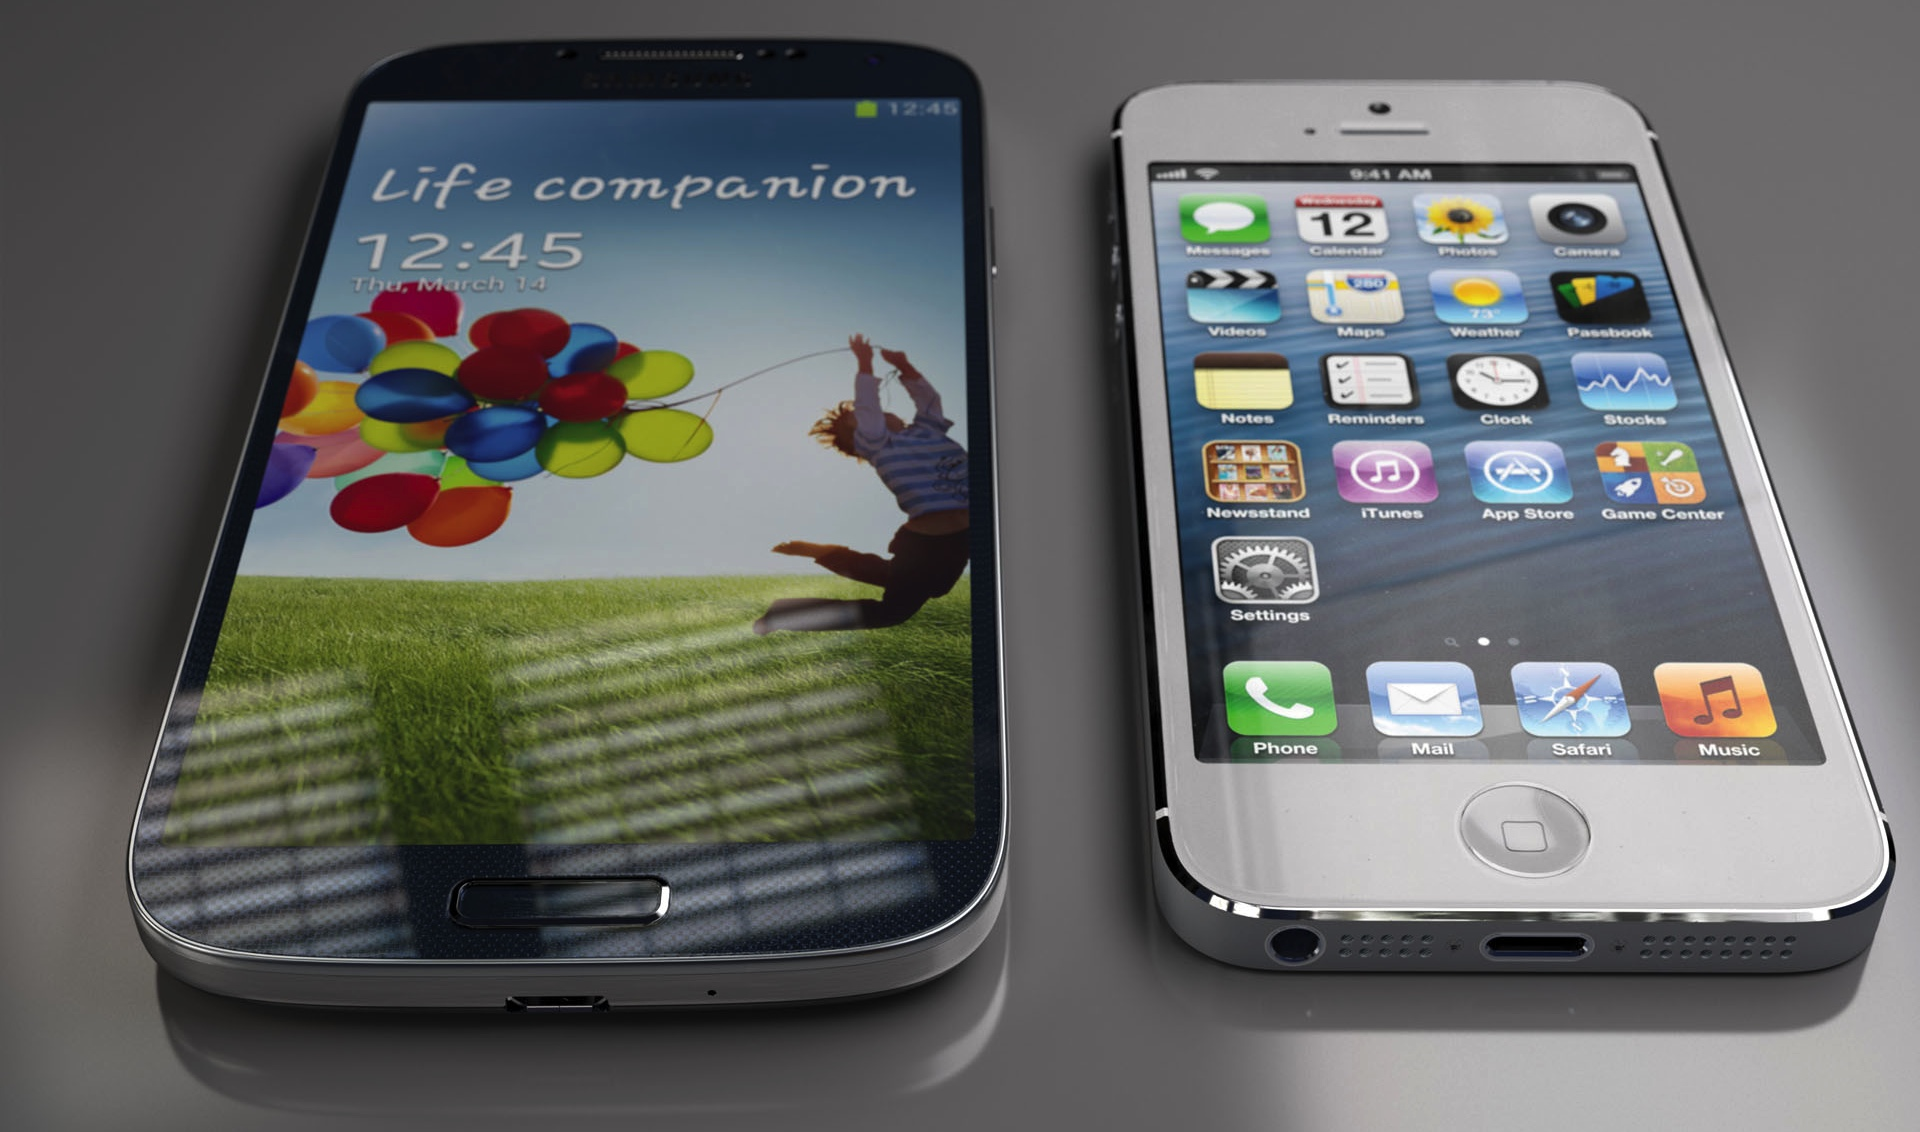 iPhone vs Android: Long-Term Smartphone Value?